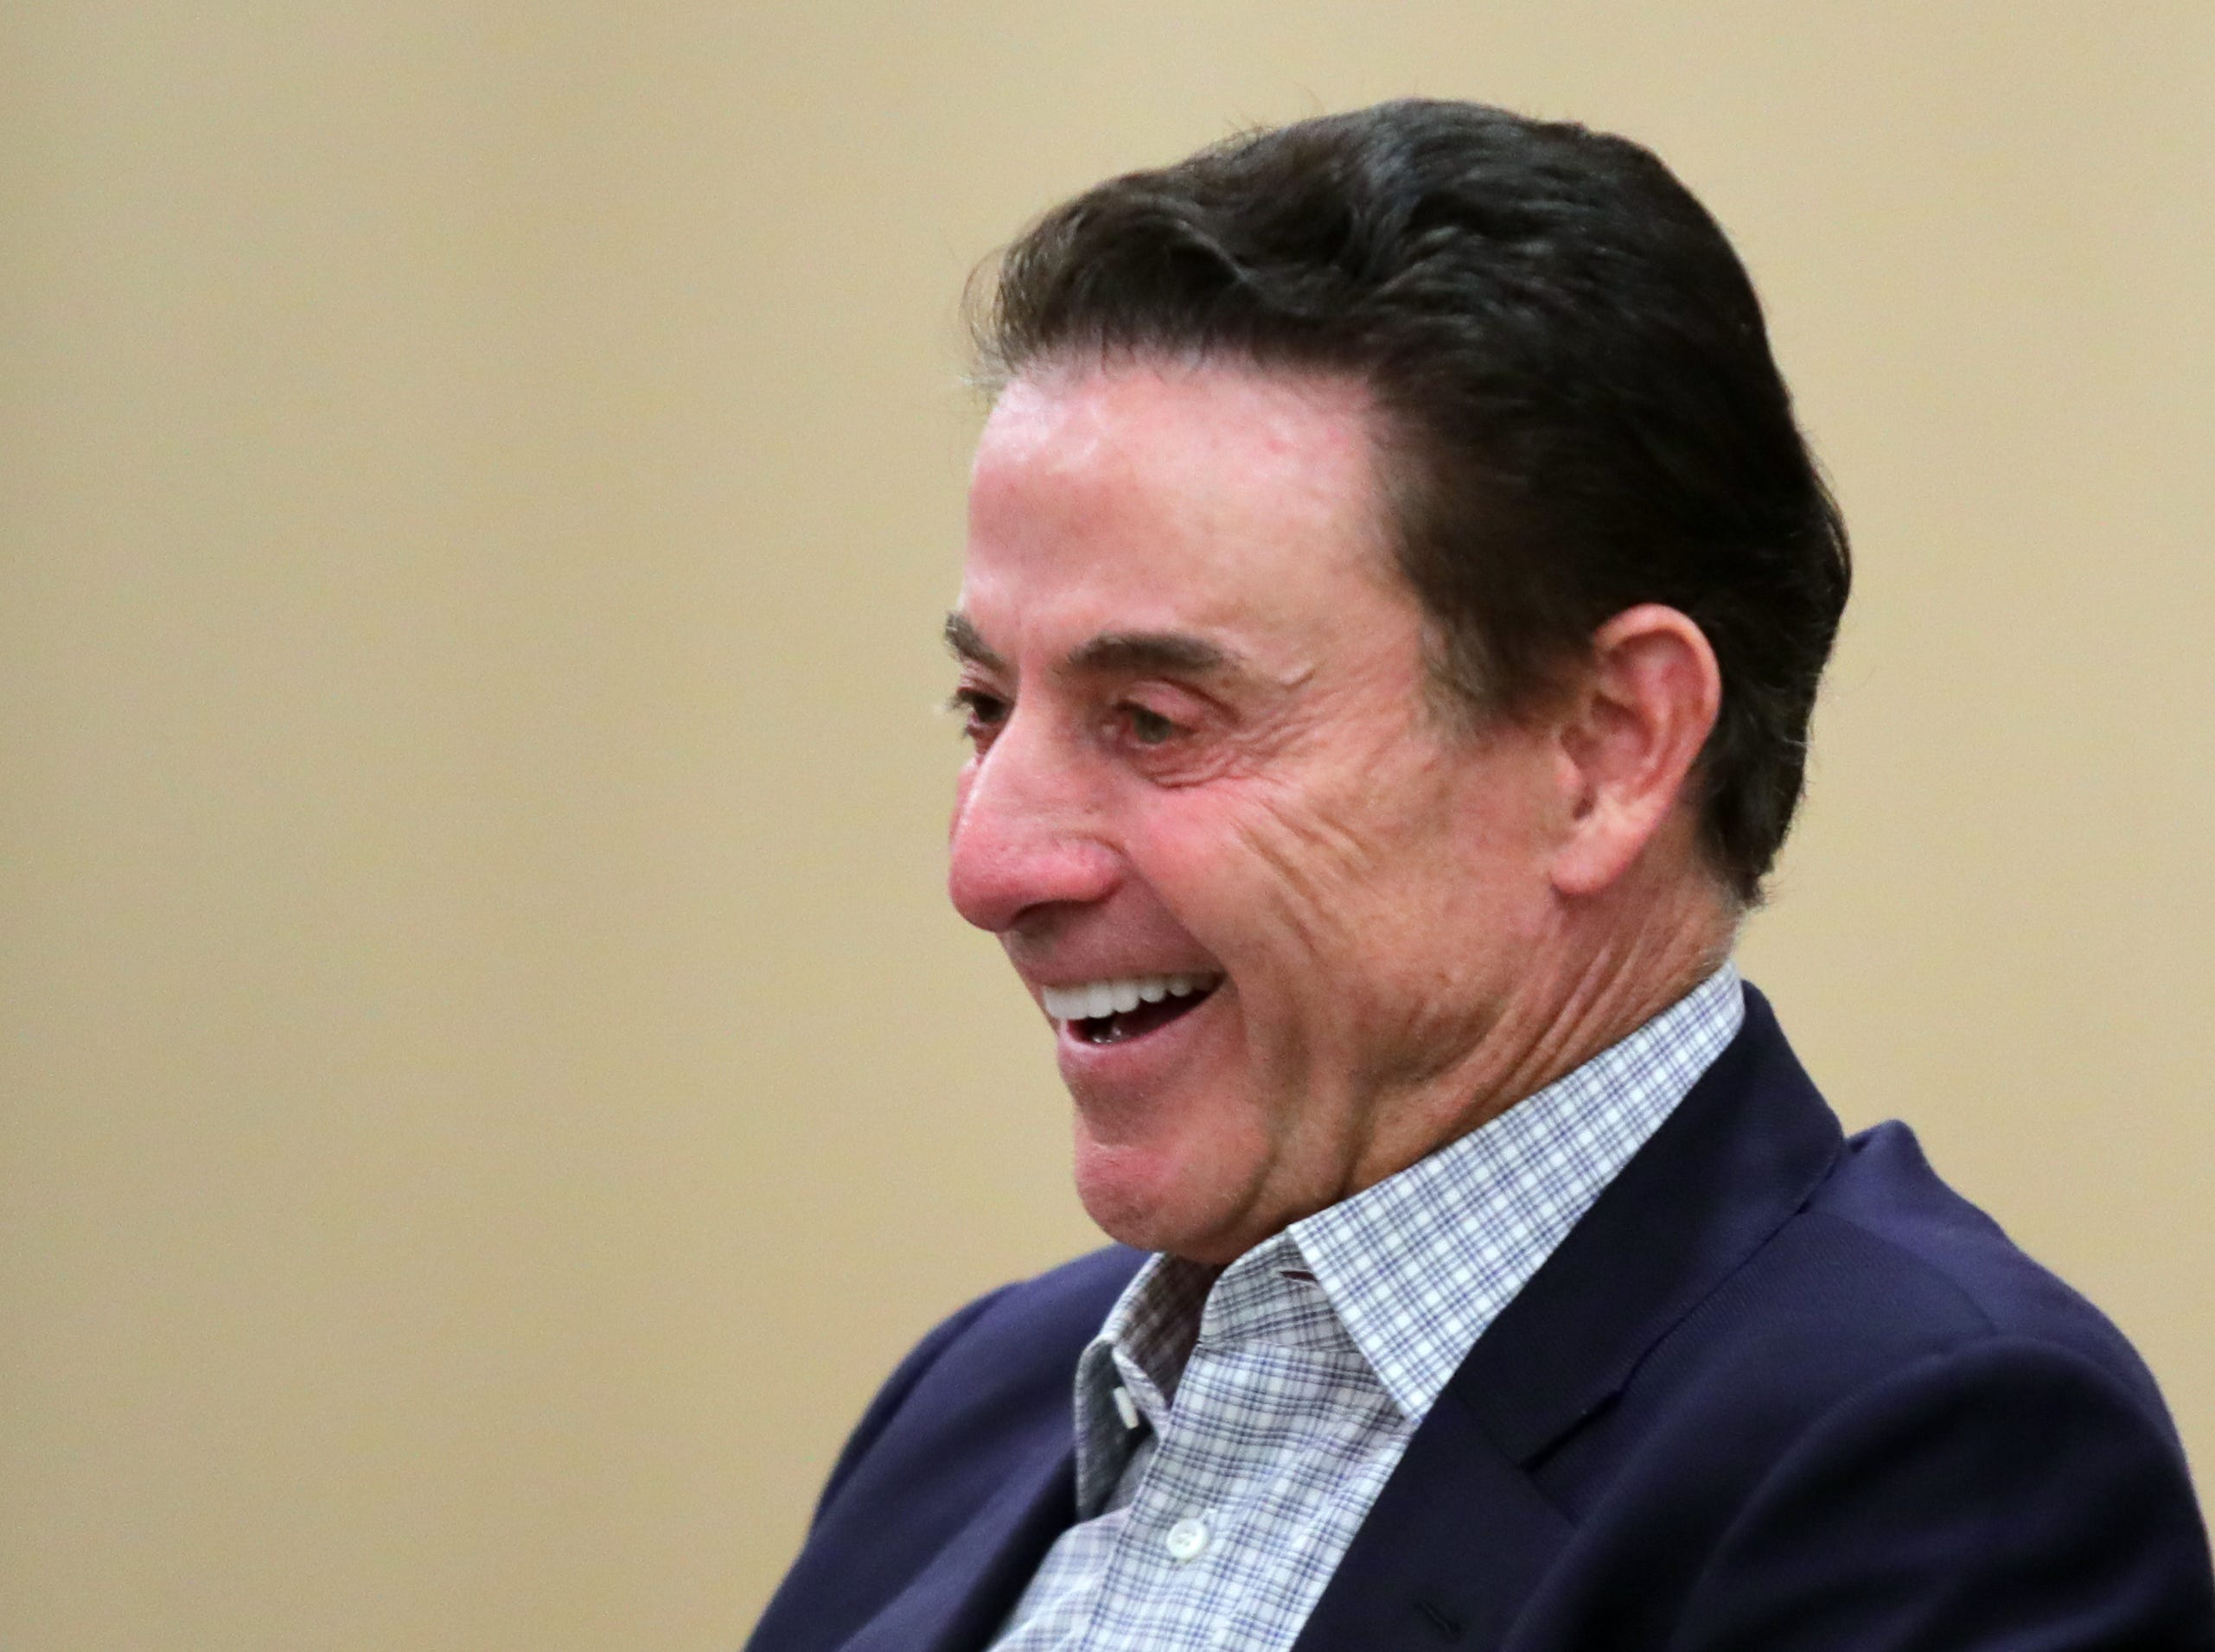 Rick Pitino talks with Courier Journal's Jeff Greer at the Omni Hotel on Friday afternoon after a book signing in Louisville, Kentucky.Sept. 14, 2018